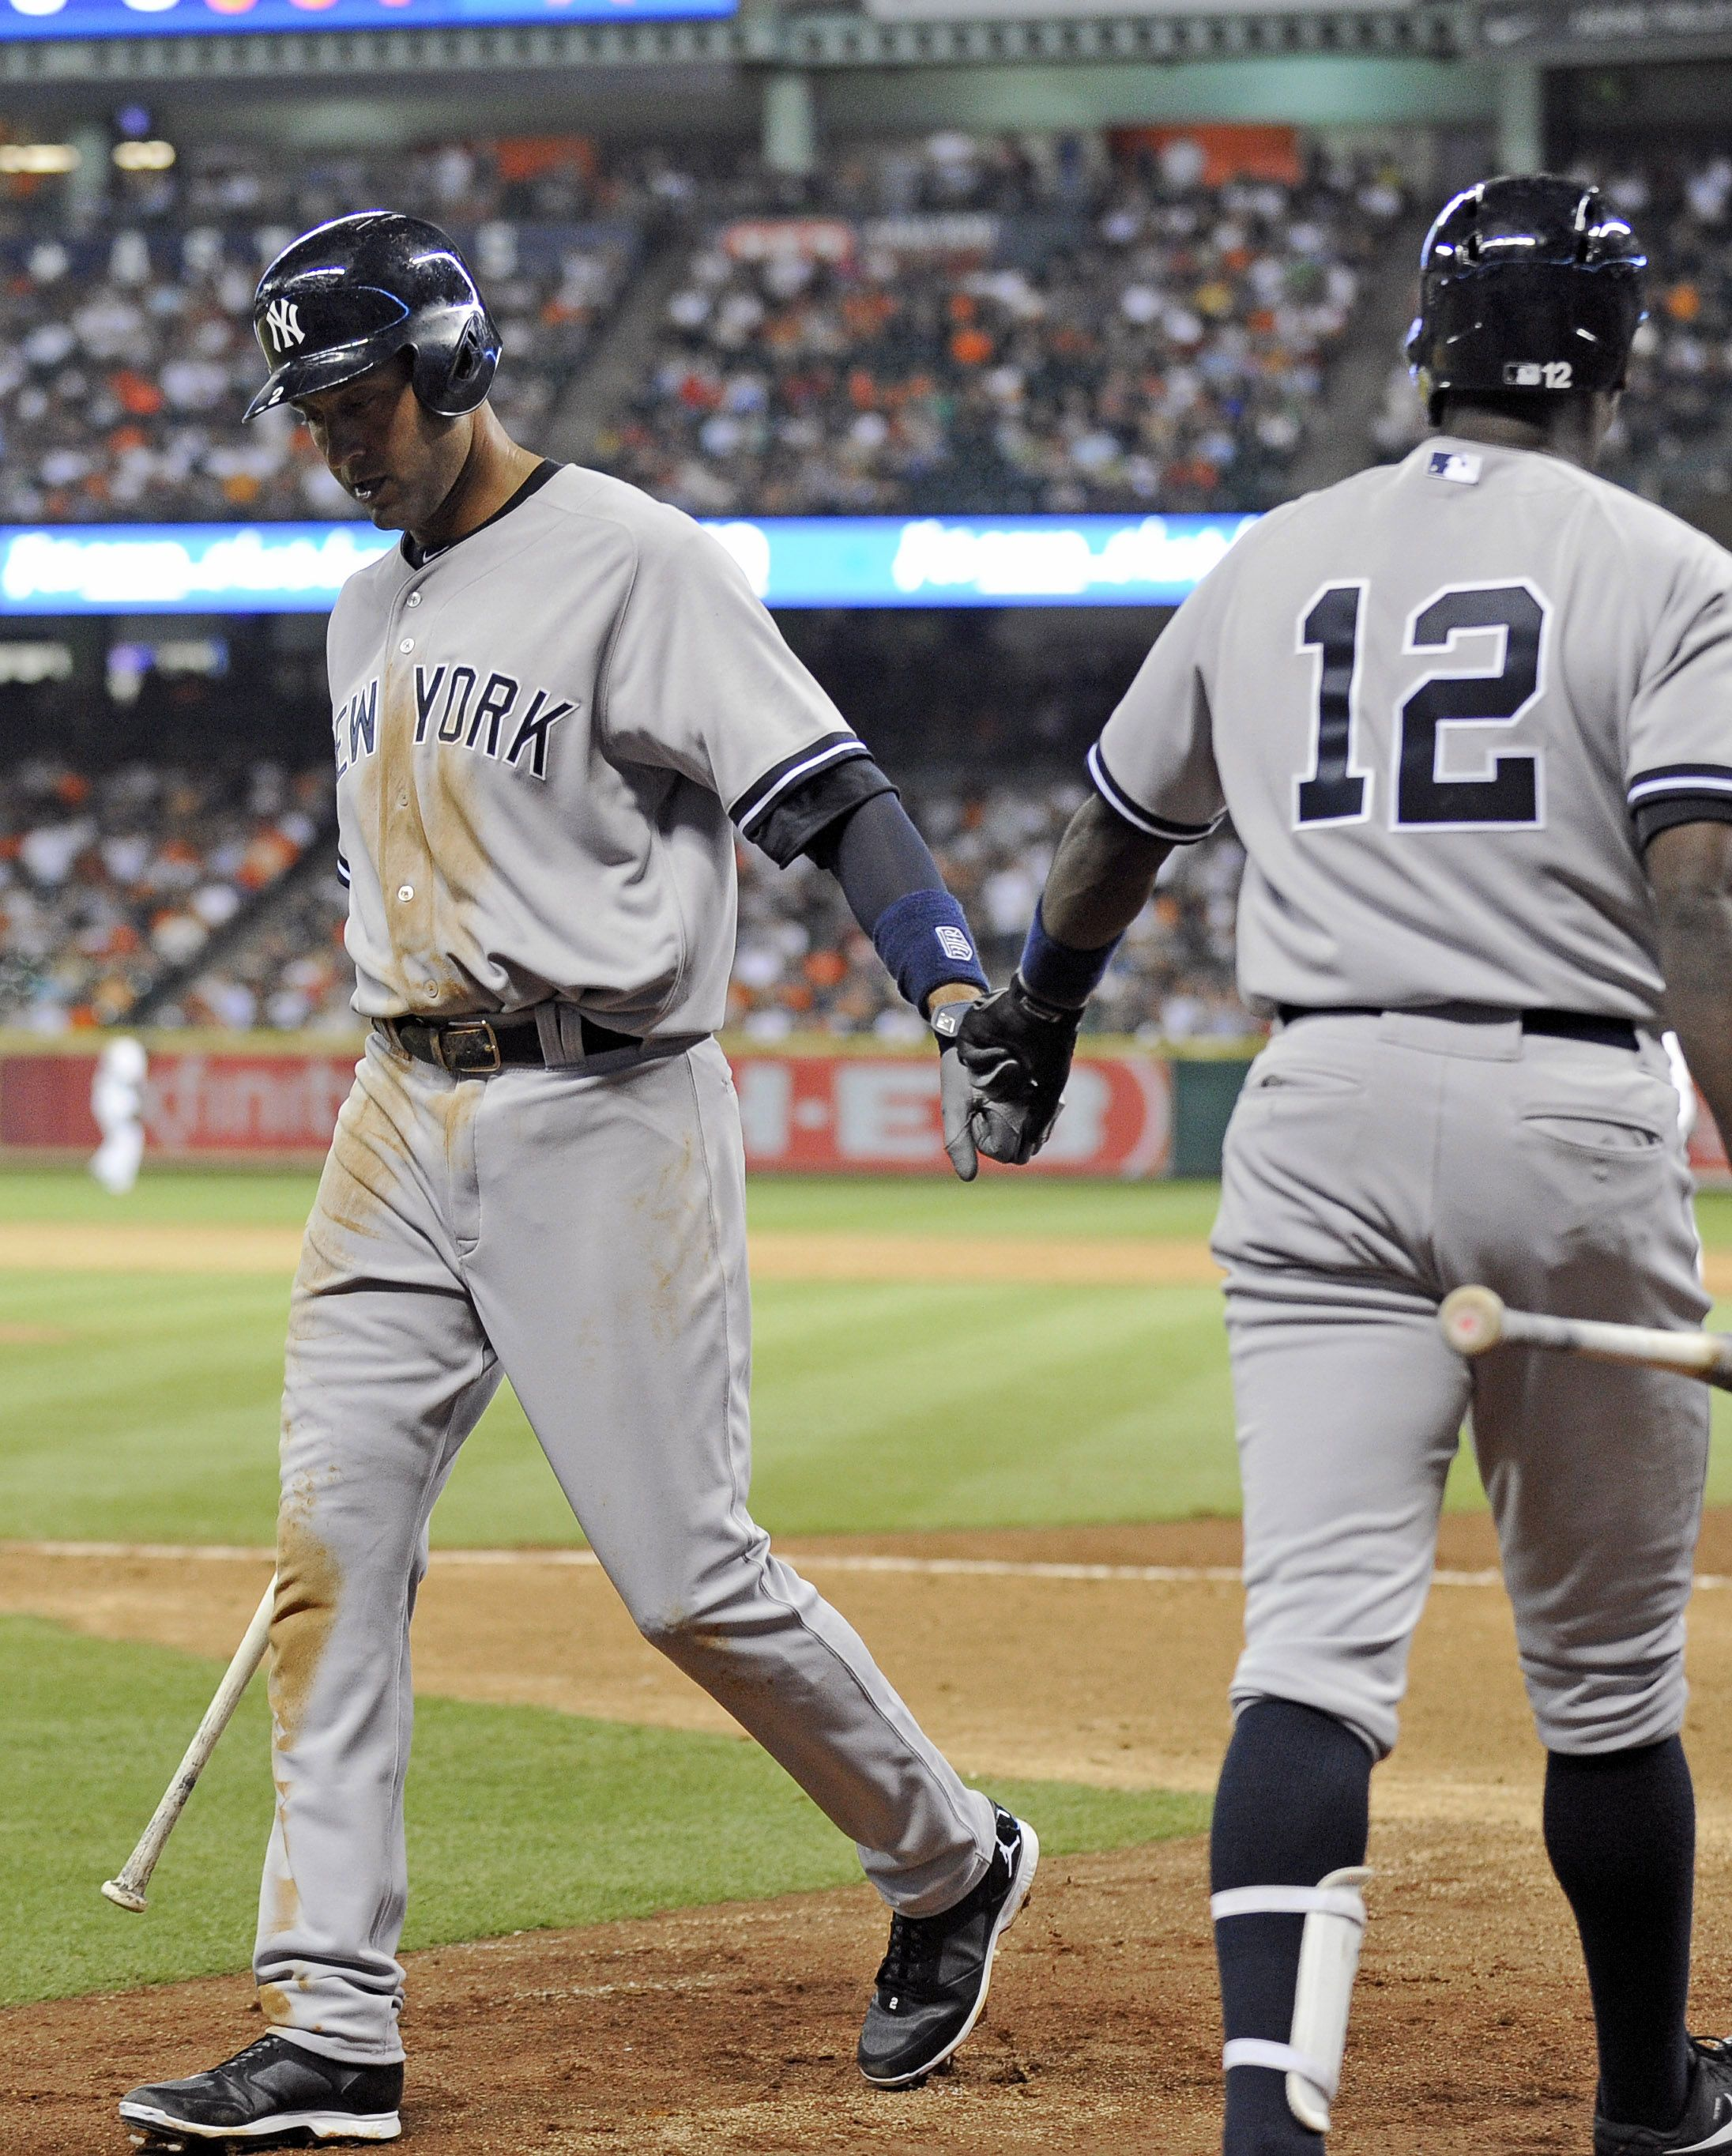 New York Yankees' Derek Jeter, left, is congratulated by Alfonso Soriano (12) after scoring on a Mark Teixeira single against the Houston Astros in the eighth inning of a baseball game on opening day for the teams, Tuesday, April 1, 2014, in Houston. (AP Photo/Pat Sullivan)